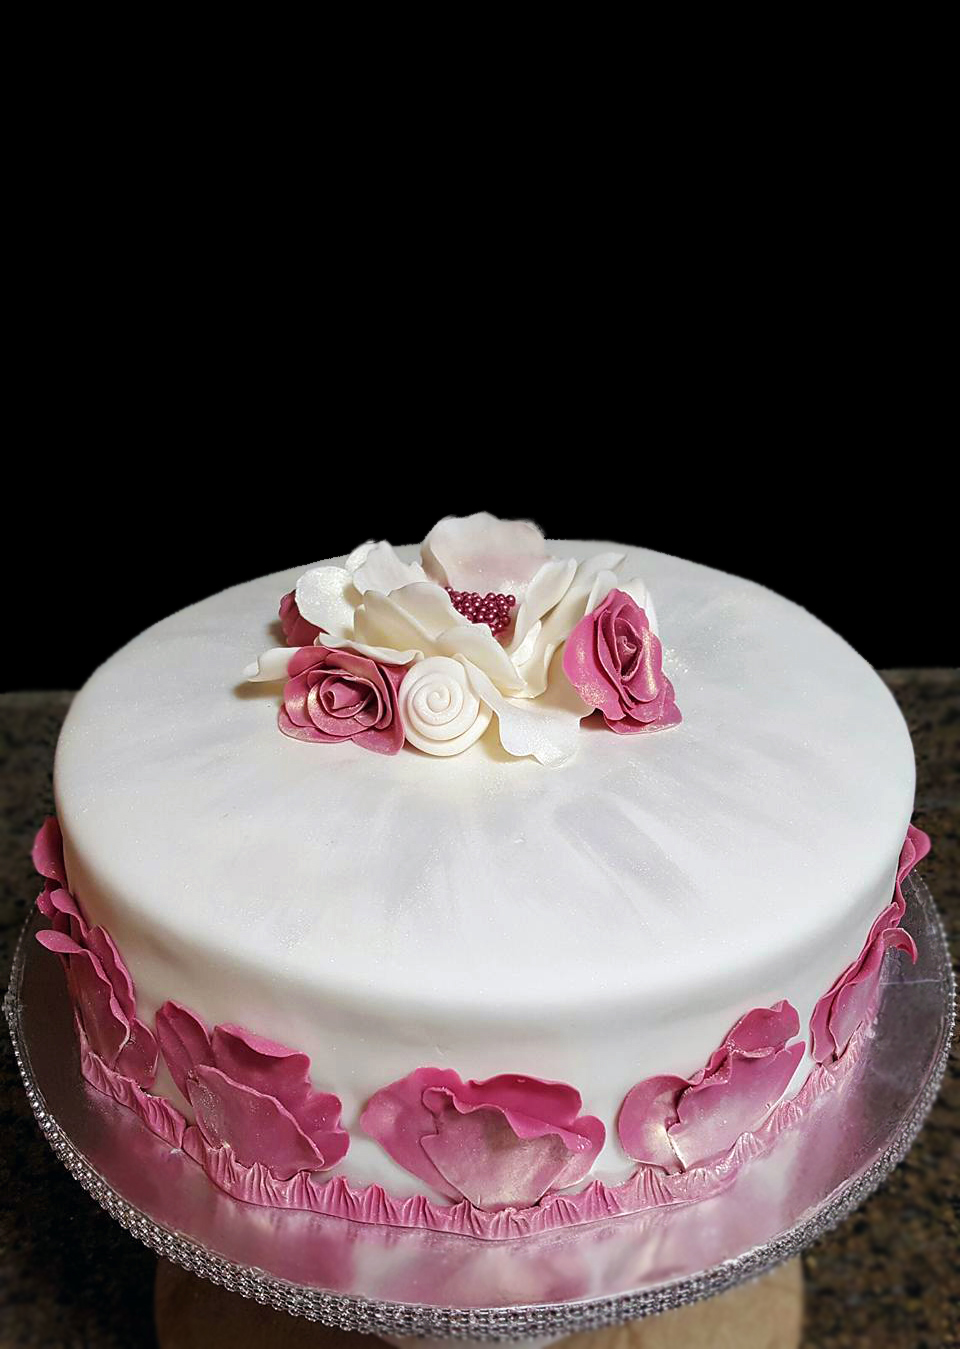 Fios de Mel by Elizabete Costa Cakes and Sweet New York -  1 tier cake with rose petals and golden dust.jpg